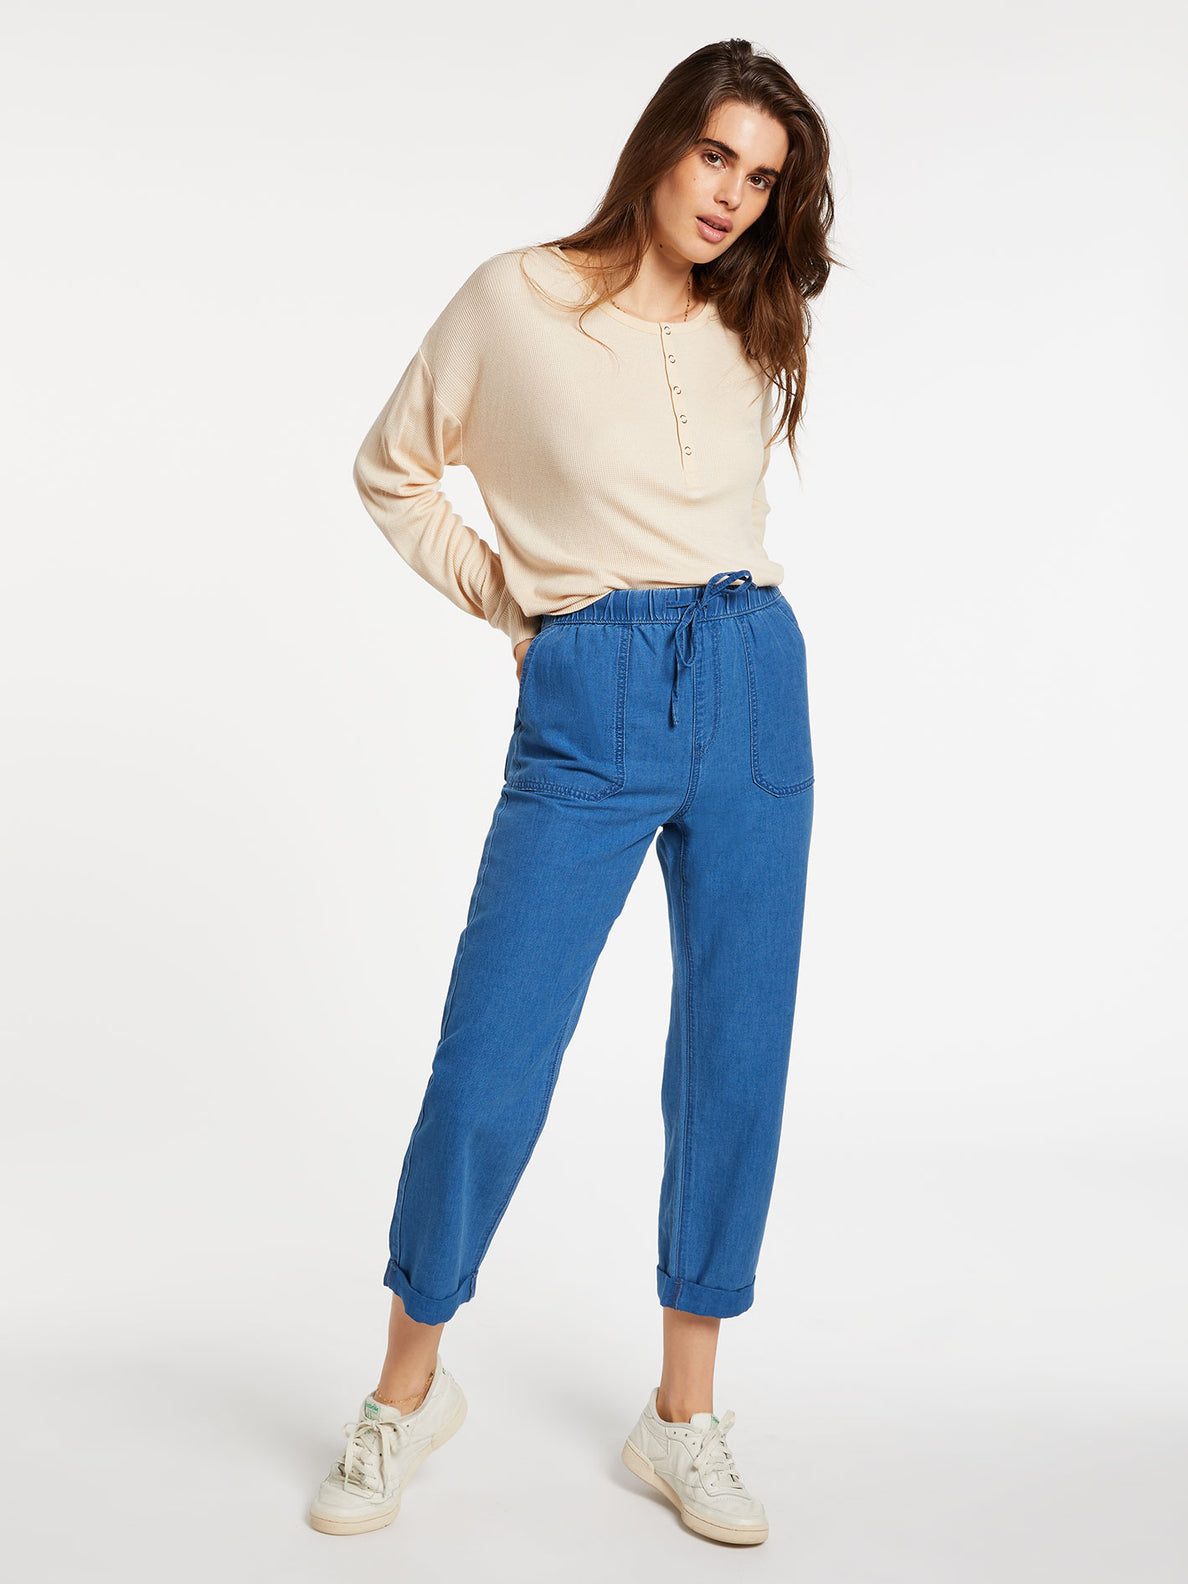 Sunday Strut Pants - Airforce Blue (B1232006_AFB) [F]